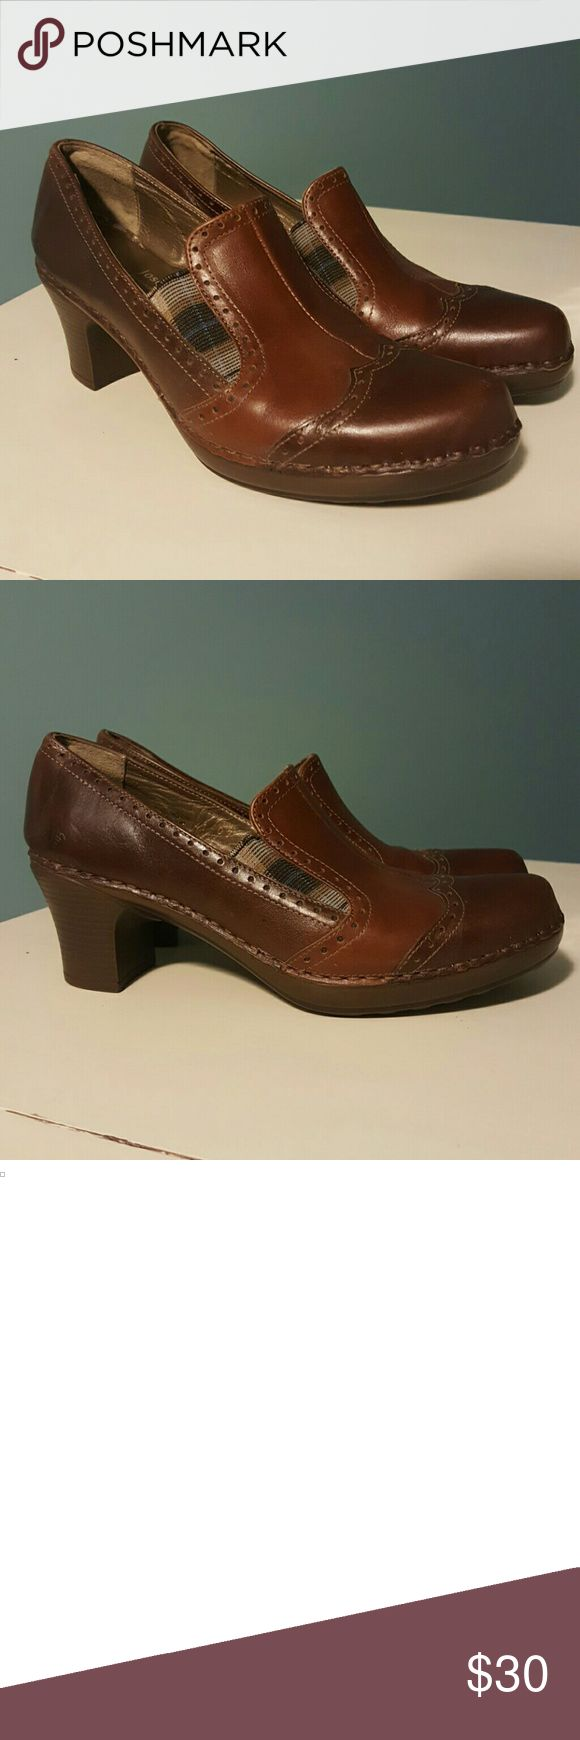 "Josef Seibel Comfort Heel/Shoes 40 Awesome pair of brown leather heels by Josef Seibel. If you have ever owned a pair of Josef Seibel shoes, you know just how comfy they are!  Heels measure 2.5"". EUC Josef Seibel Shoes"